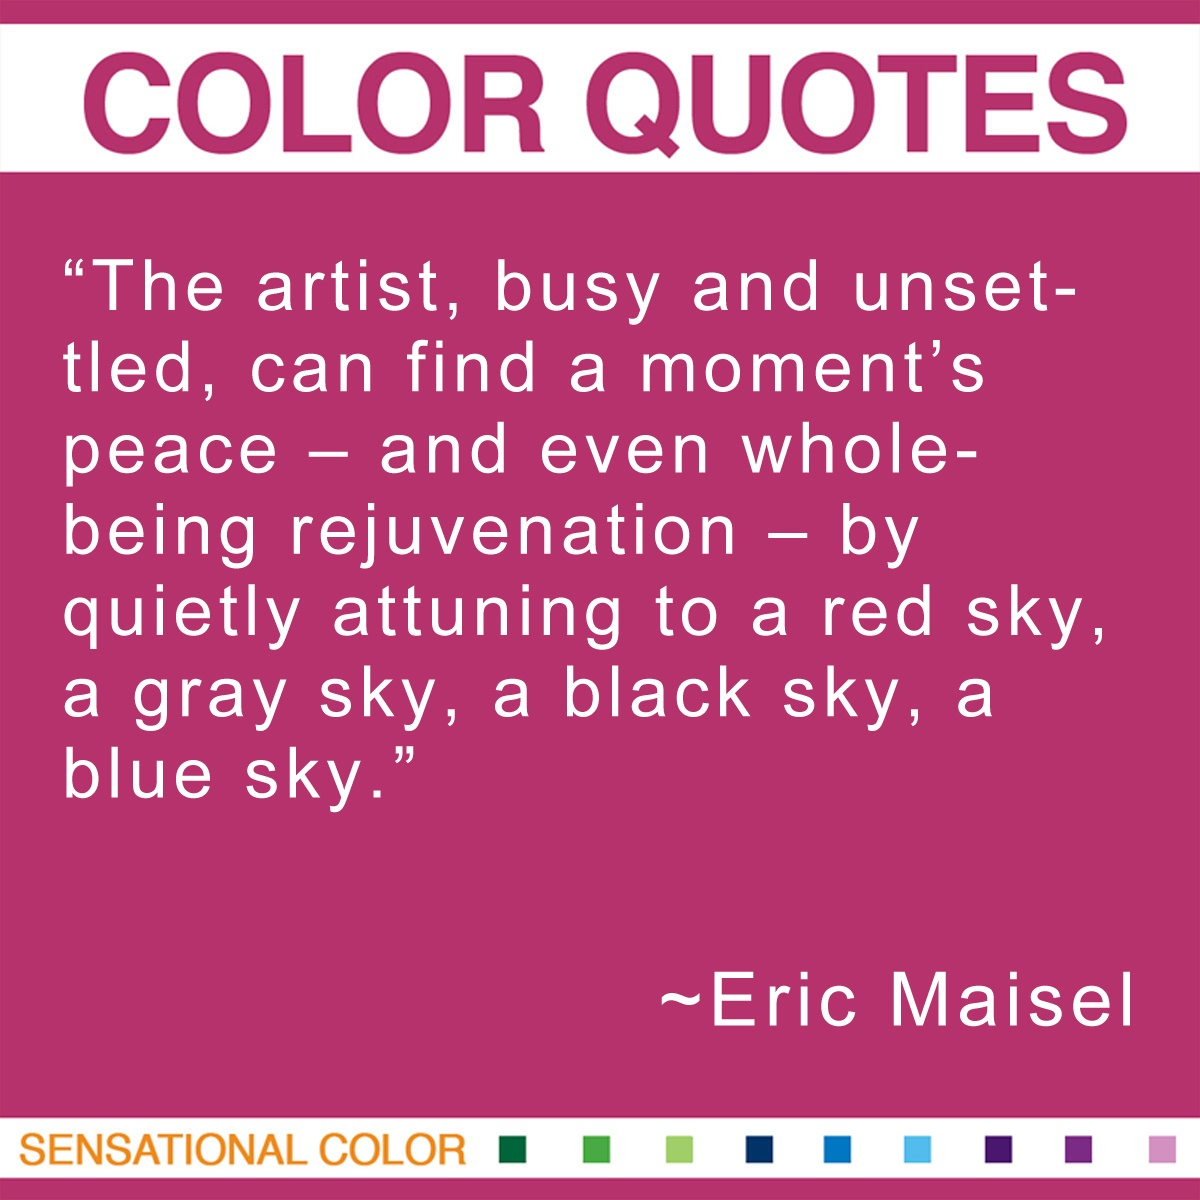 """The artist, busy and unsettled, can find a moment's peace – and even whole-being rejuvenation – by quietly attuning to a red sky, a gray sky, a black sky, a blue sky."" - Eric Maisel"